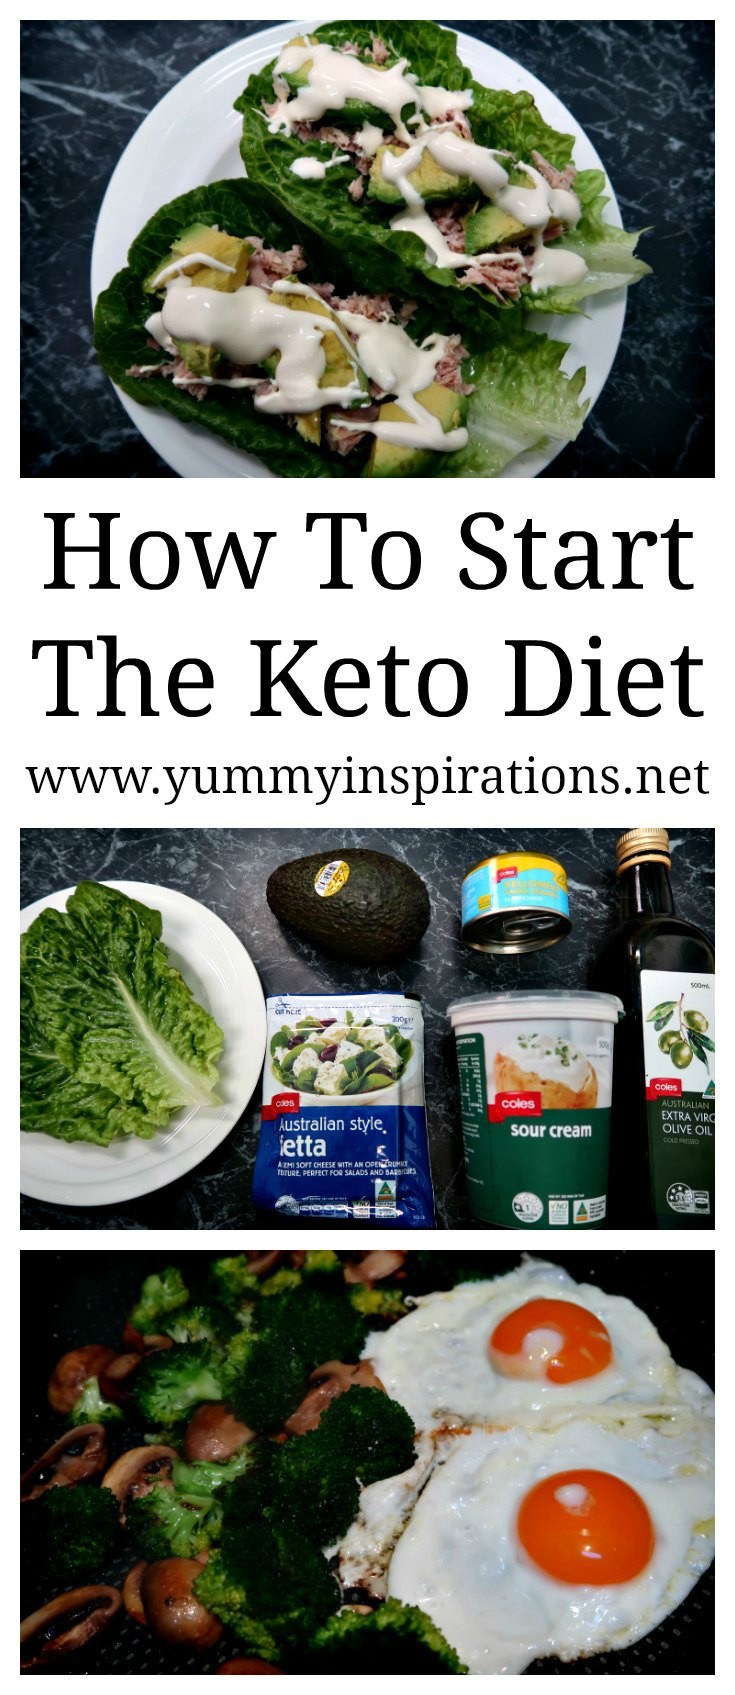 Starting Ketosis Diet  How To Start The Keto Diet Tips to help you started